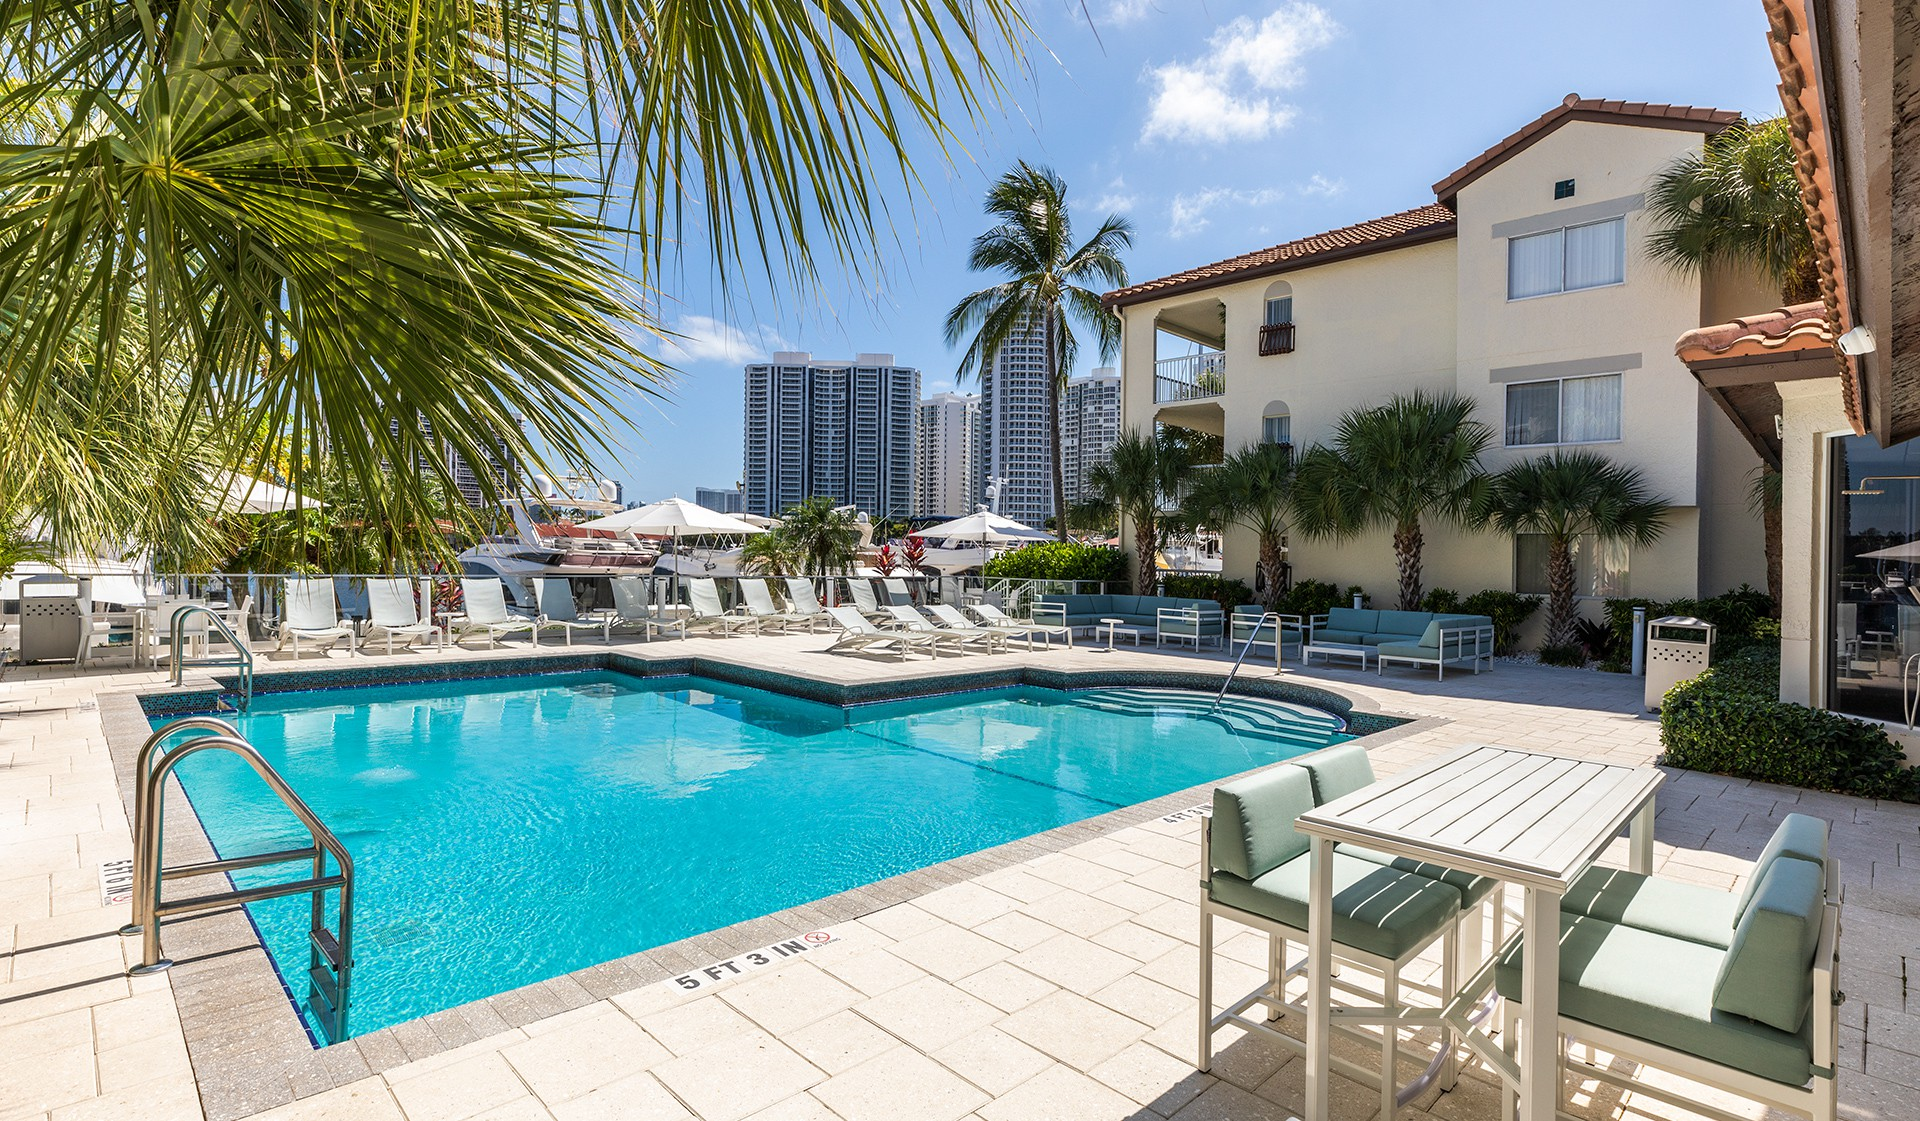 Apartments Near Barry Waterways Village Apartments for Barry University Students in Miami Shores, FL